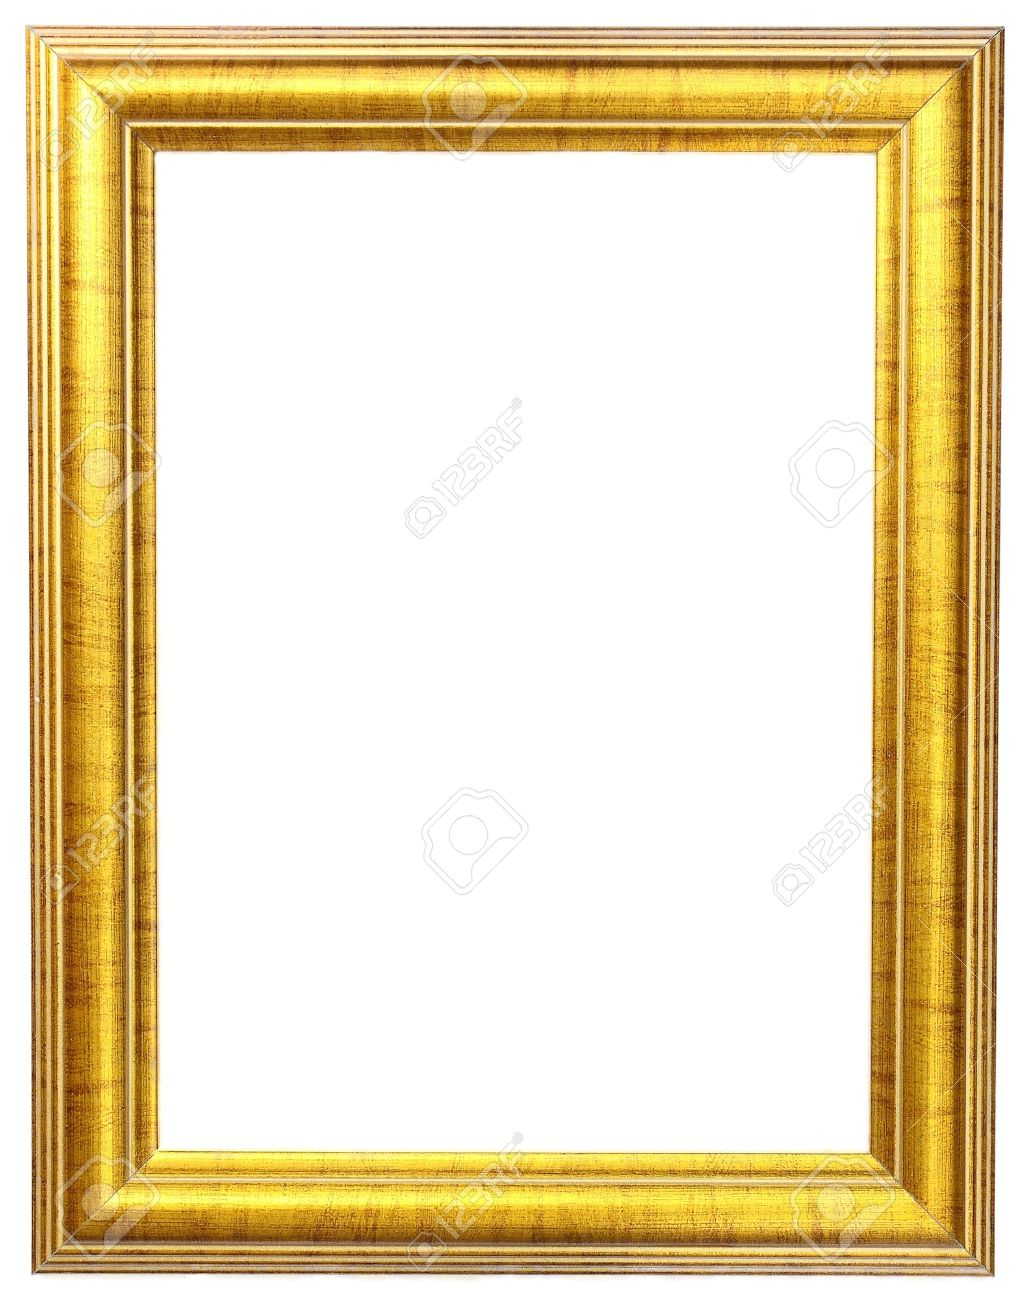 gold picture frame Stock Photo - 9808899